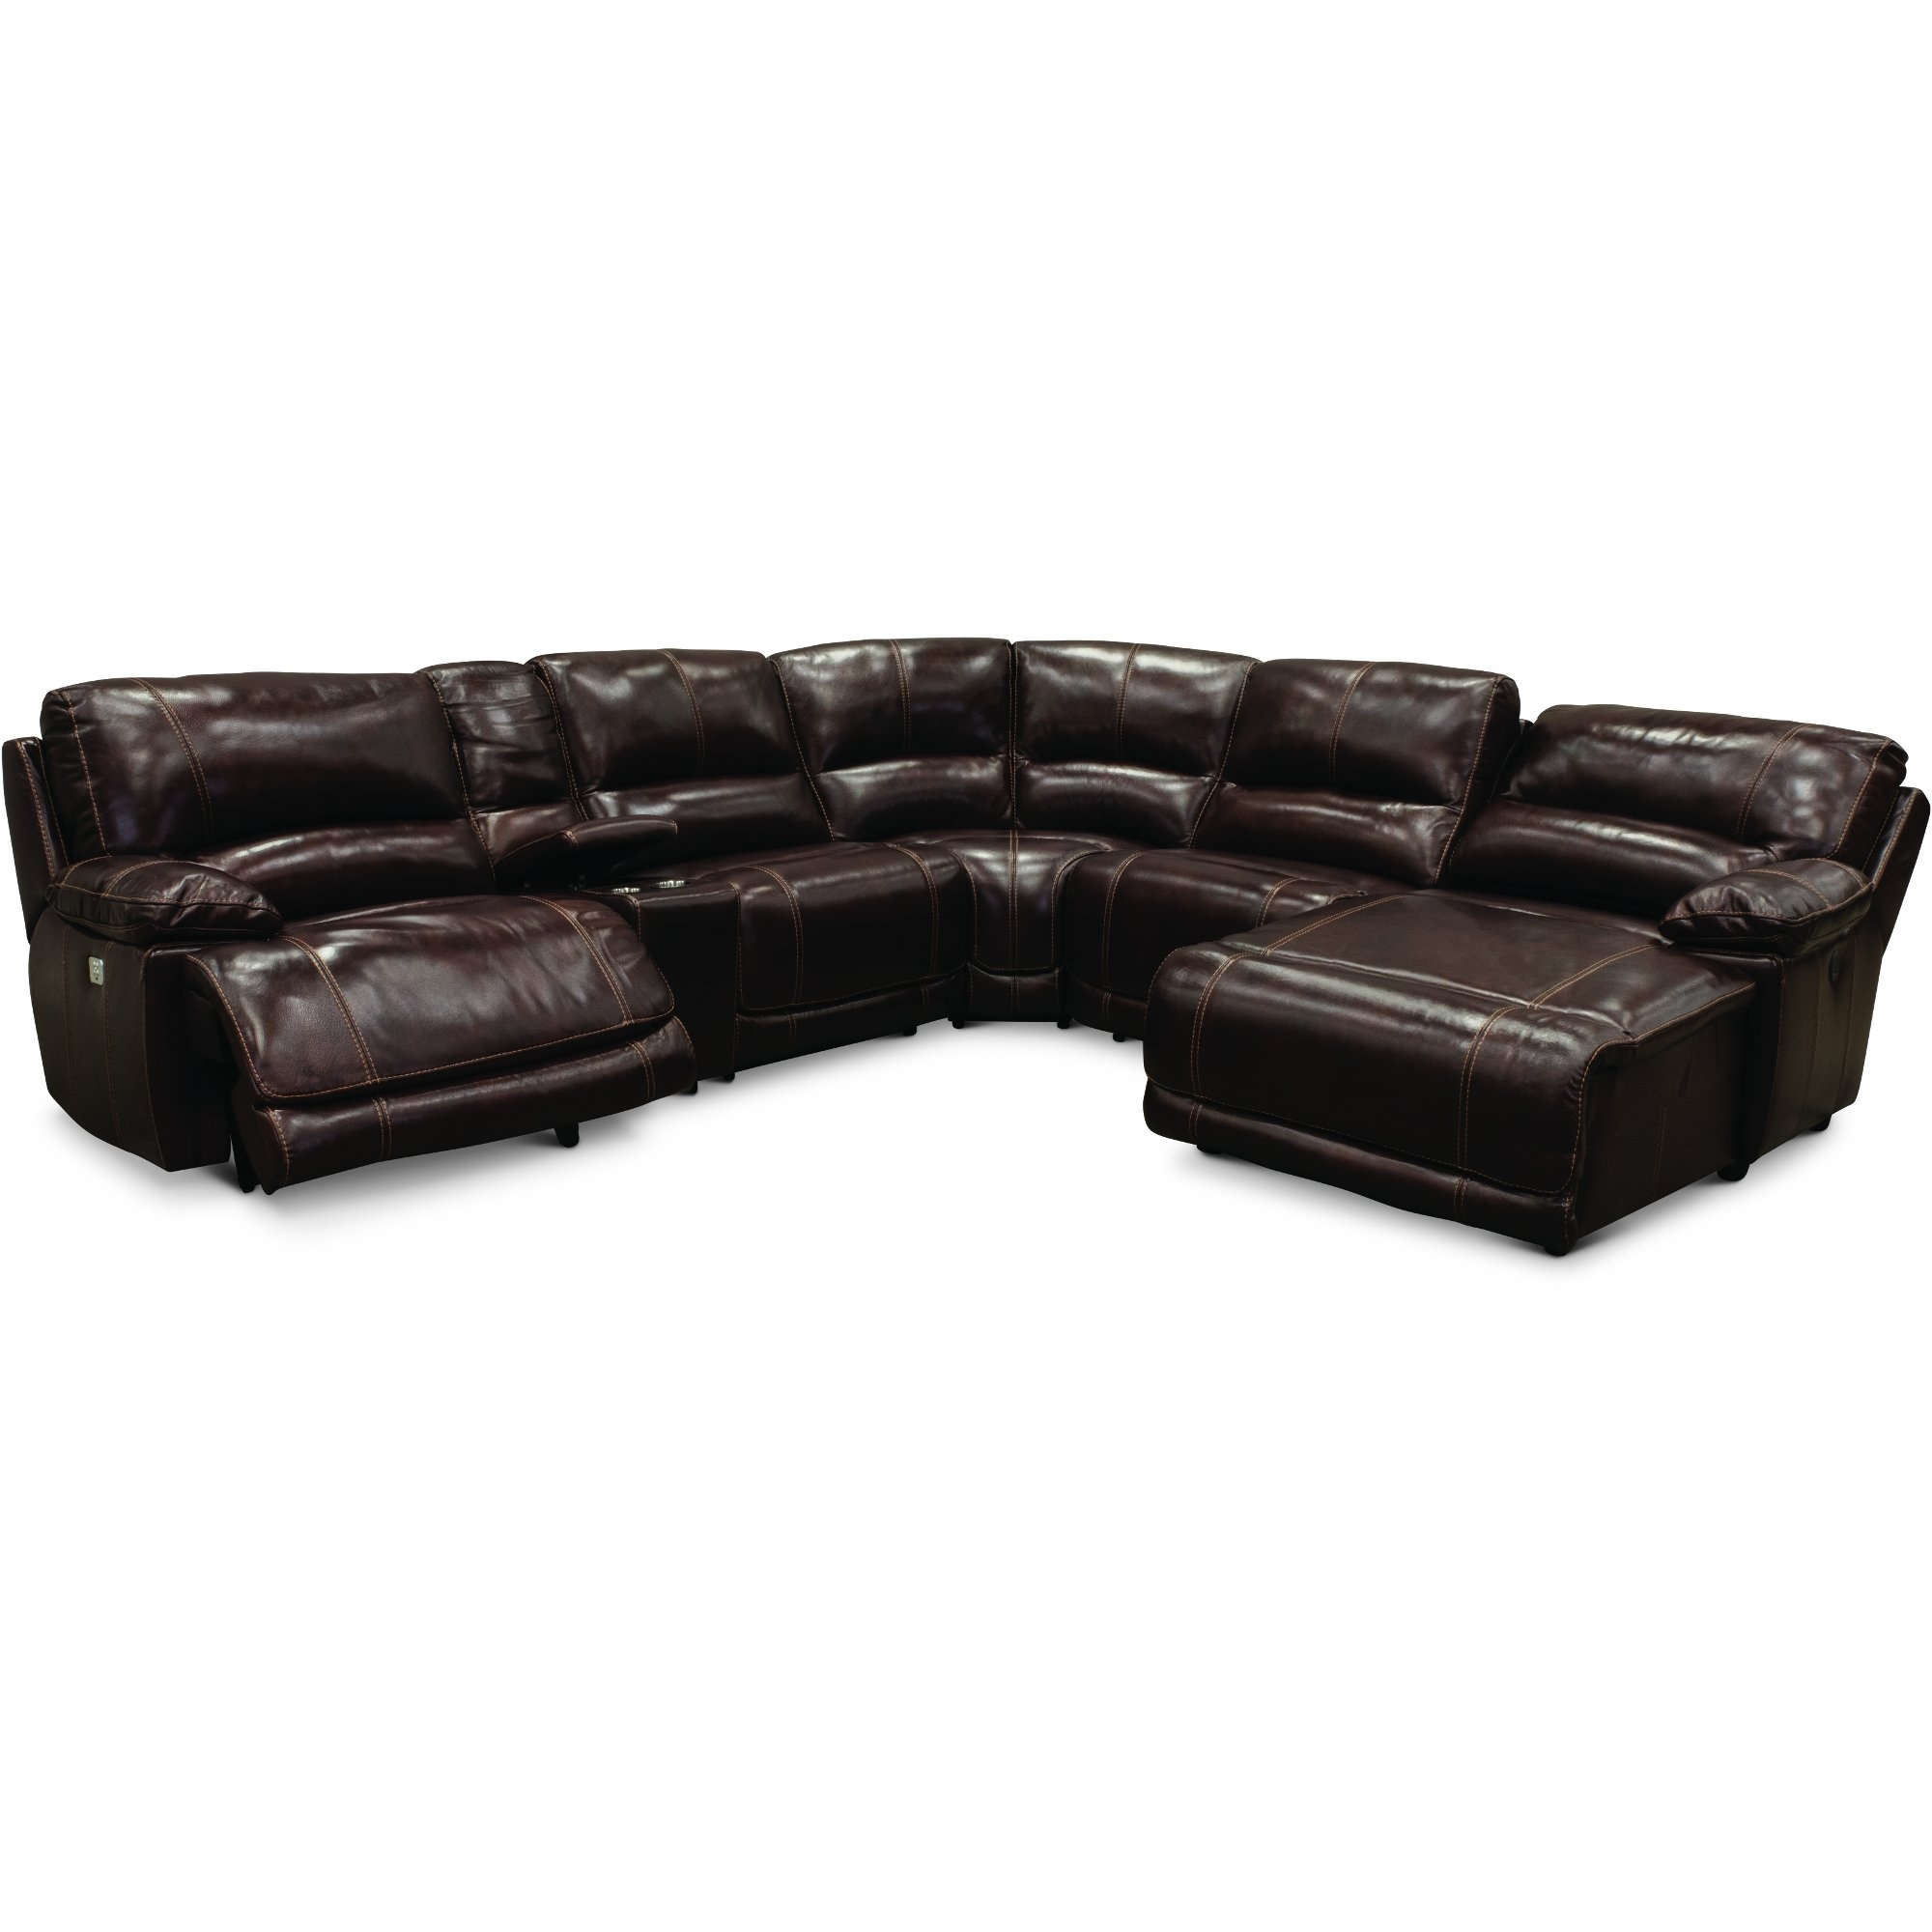 Burgundy 6 Piece Power Reclining Sectional Sofa - Brant | Rc Willey with Jackson 6 Piece Power Reclining Sectionals With  Sleeper (Image 5 of 30)